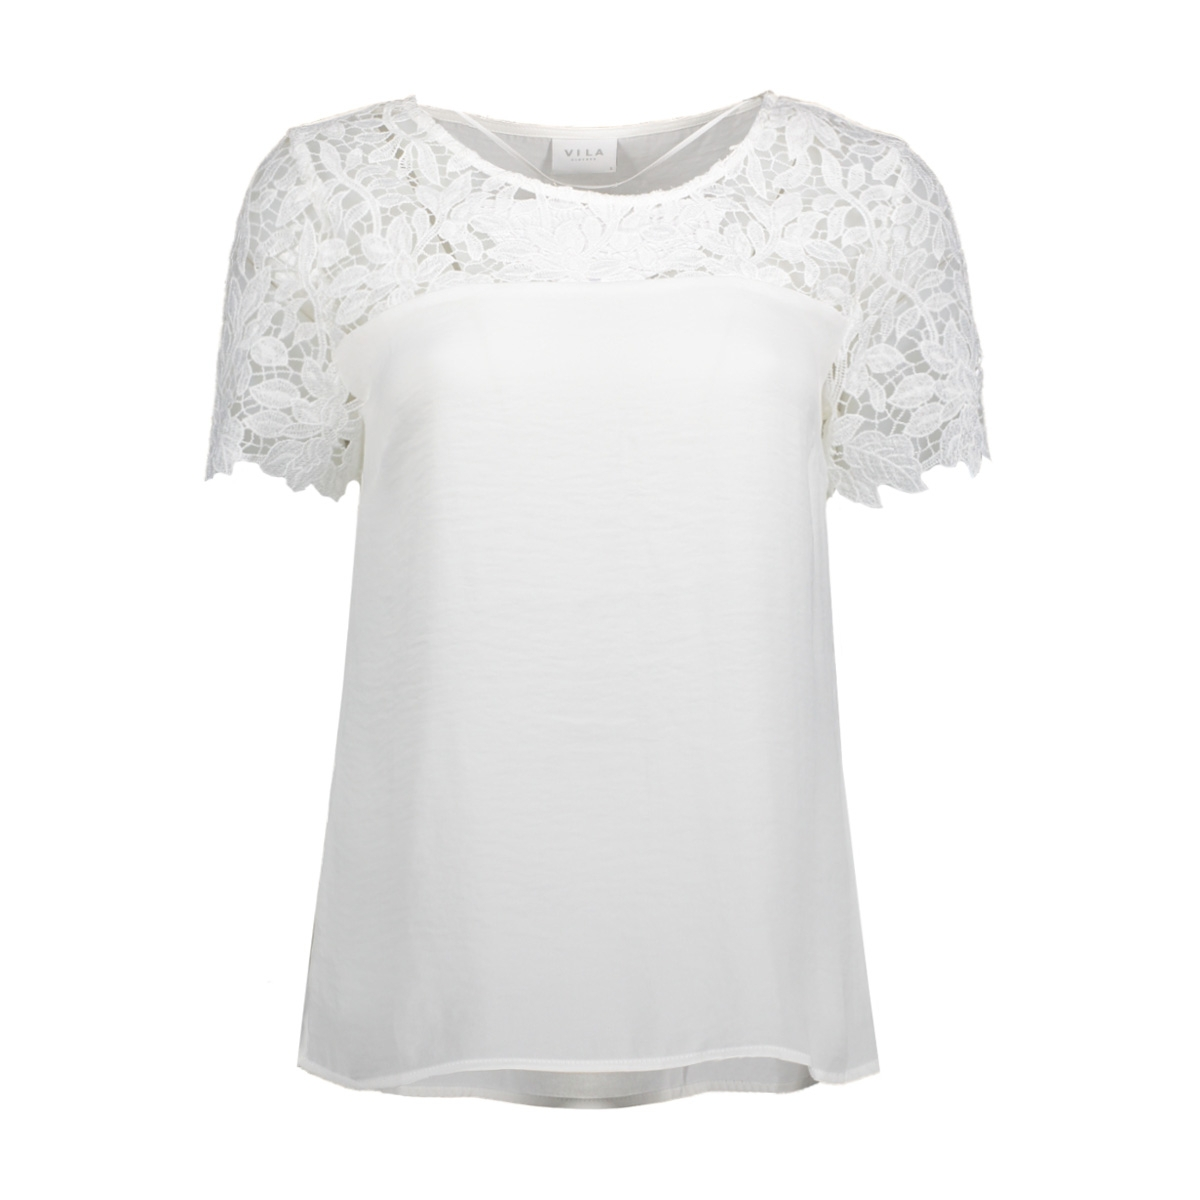 vimelli blocked lace top-noos 14040960 vila t-shirt cloud dancer